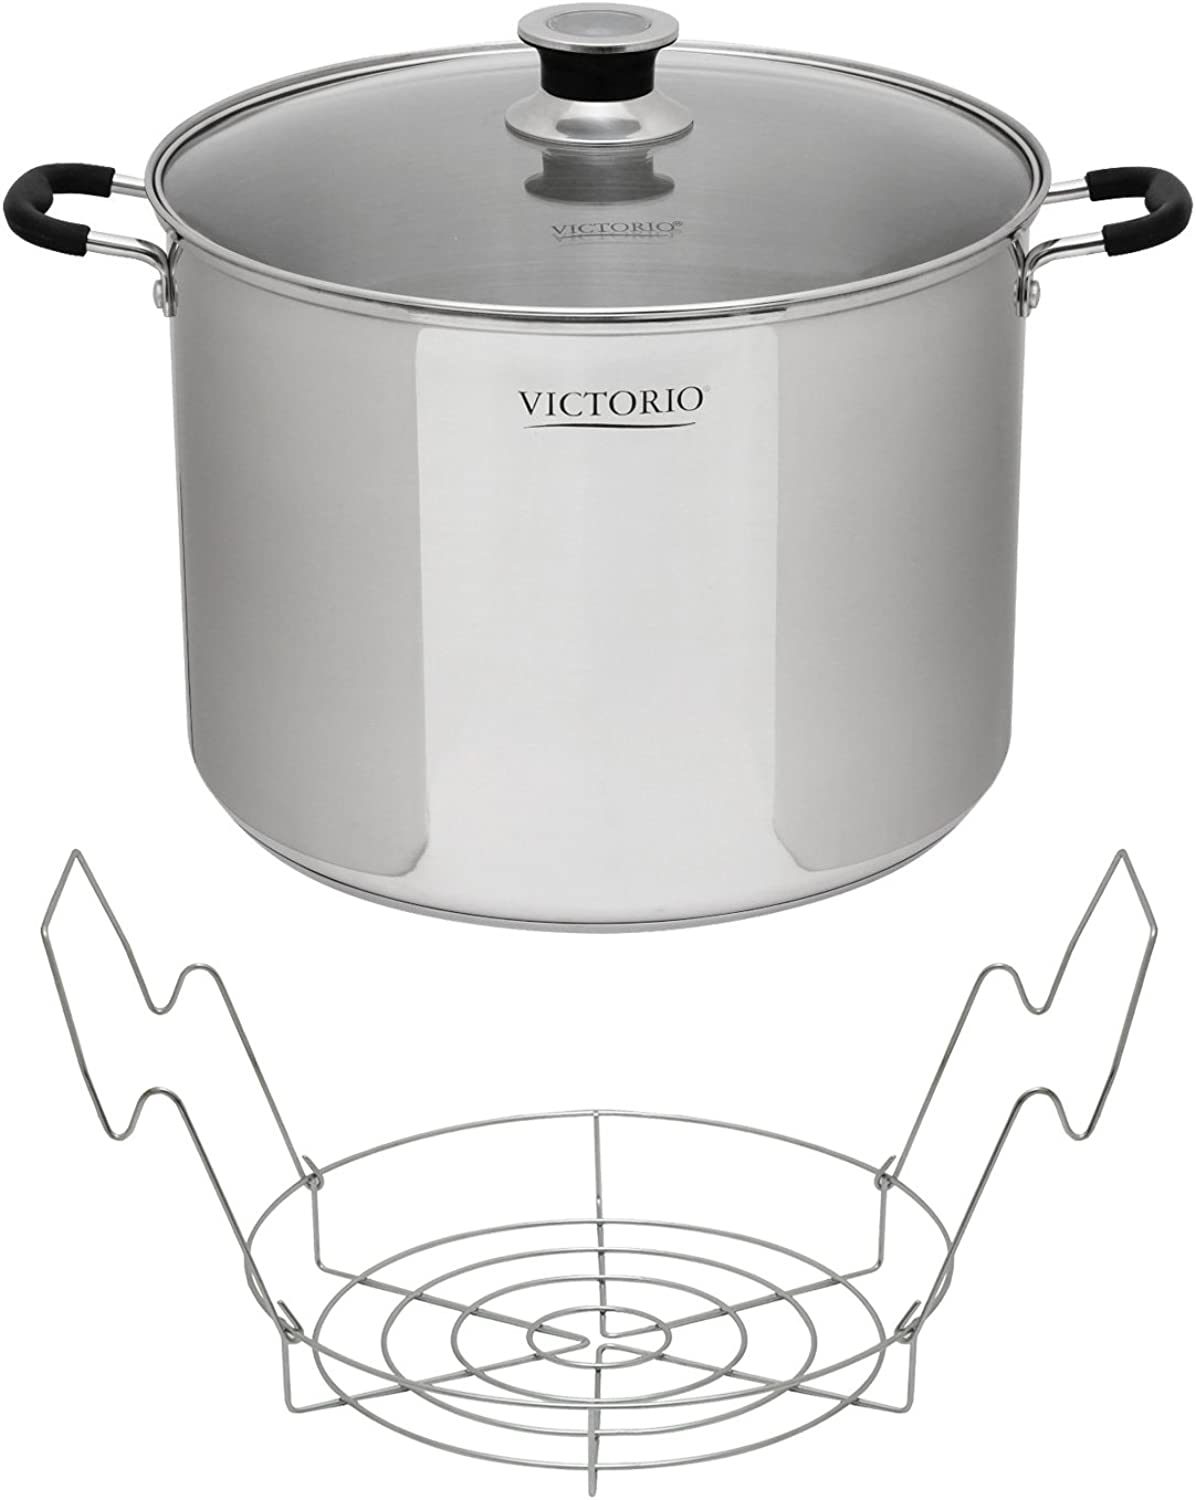 Victorio VKP1130 Stainless Steel Multi-Use Canner with Temperature Indicator w  Stainless Steel Canning Rack